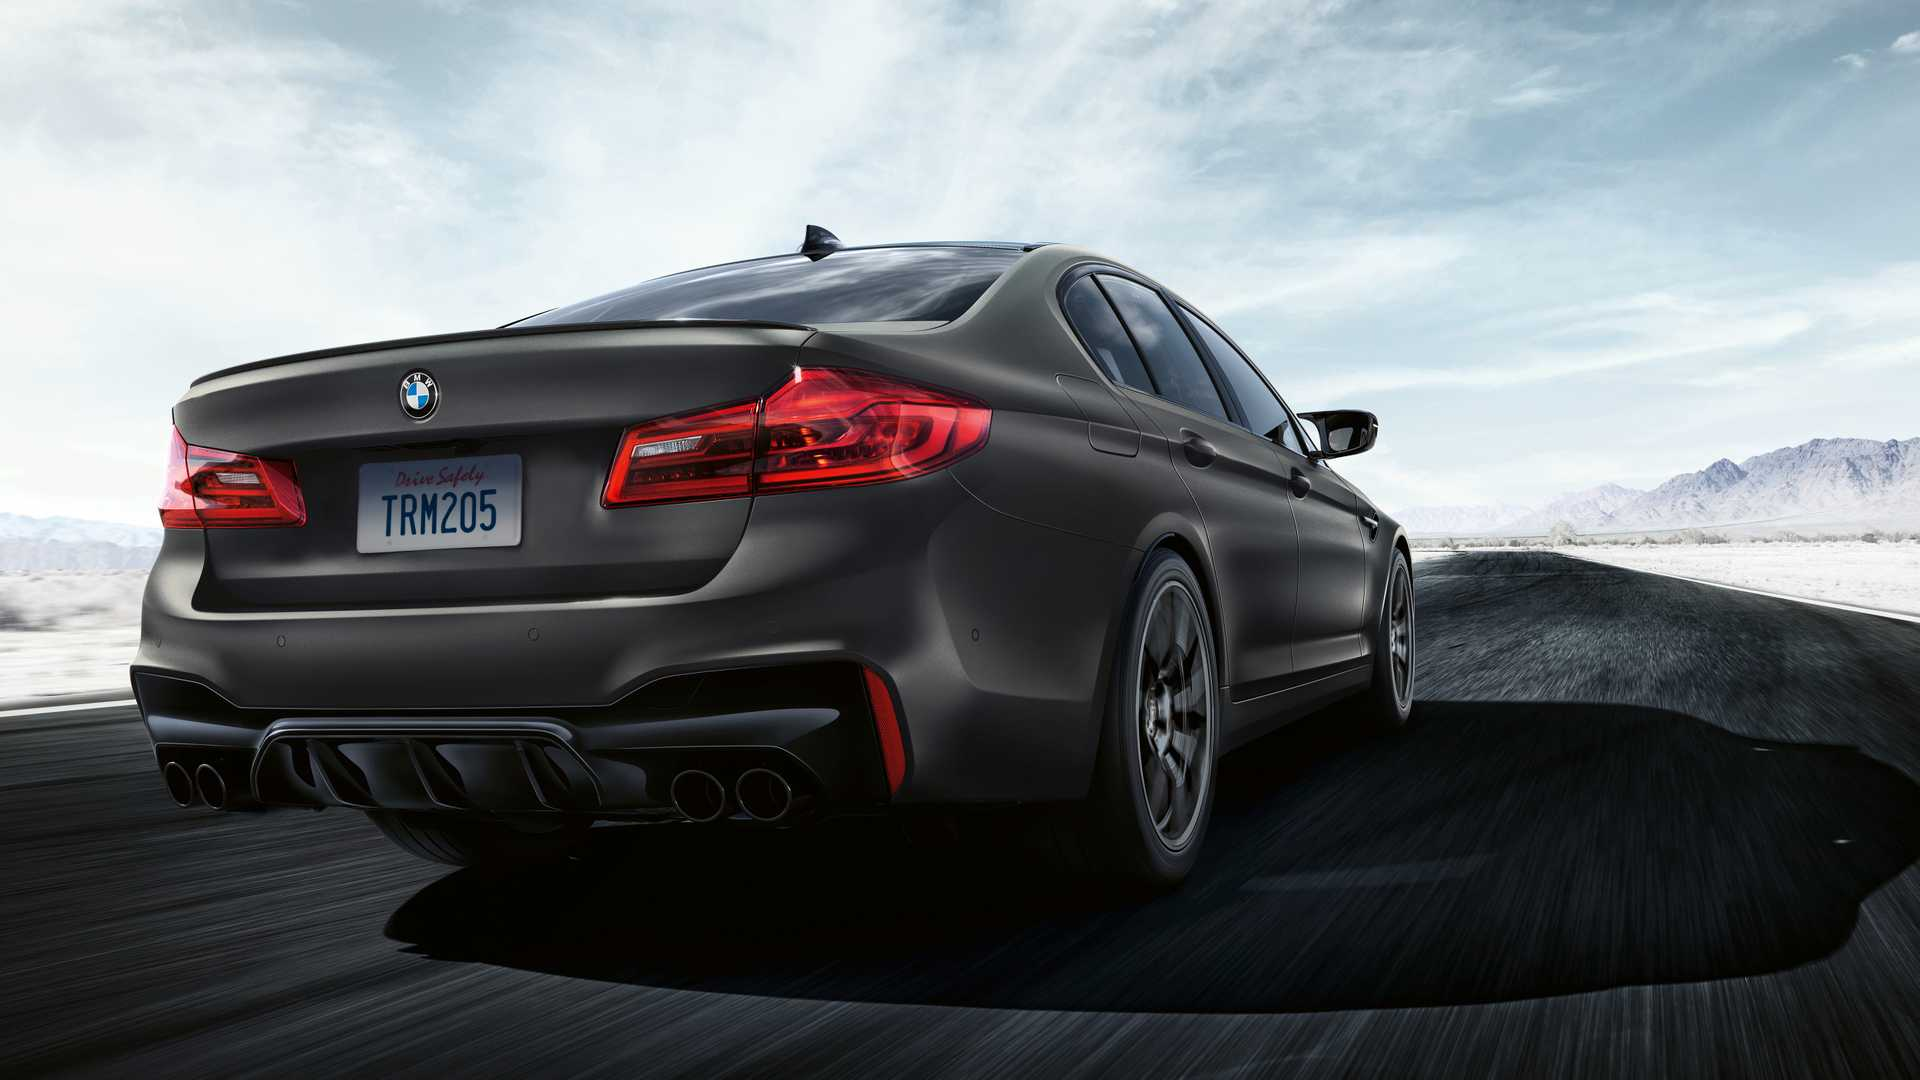 23 A 2020 BMW M5 Edition 35 Years Price And Review